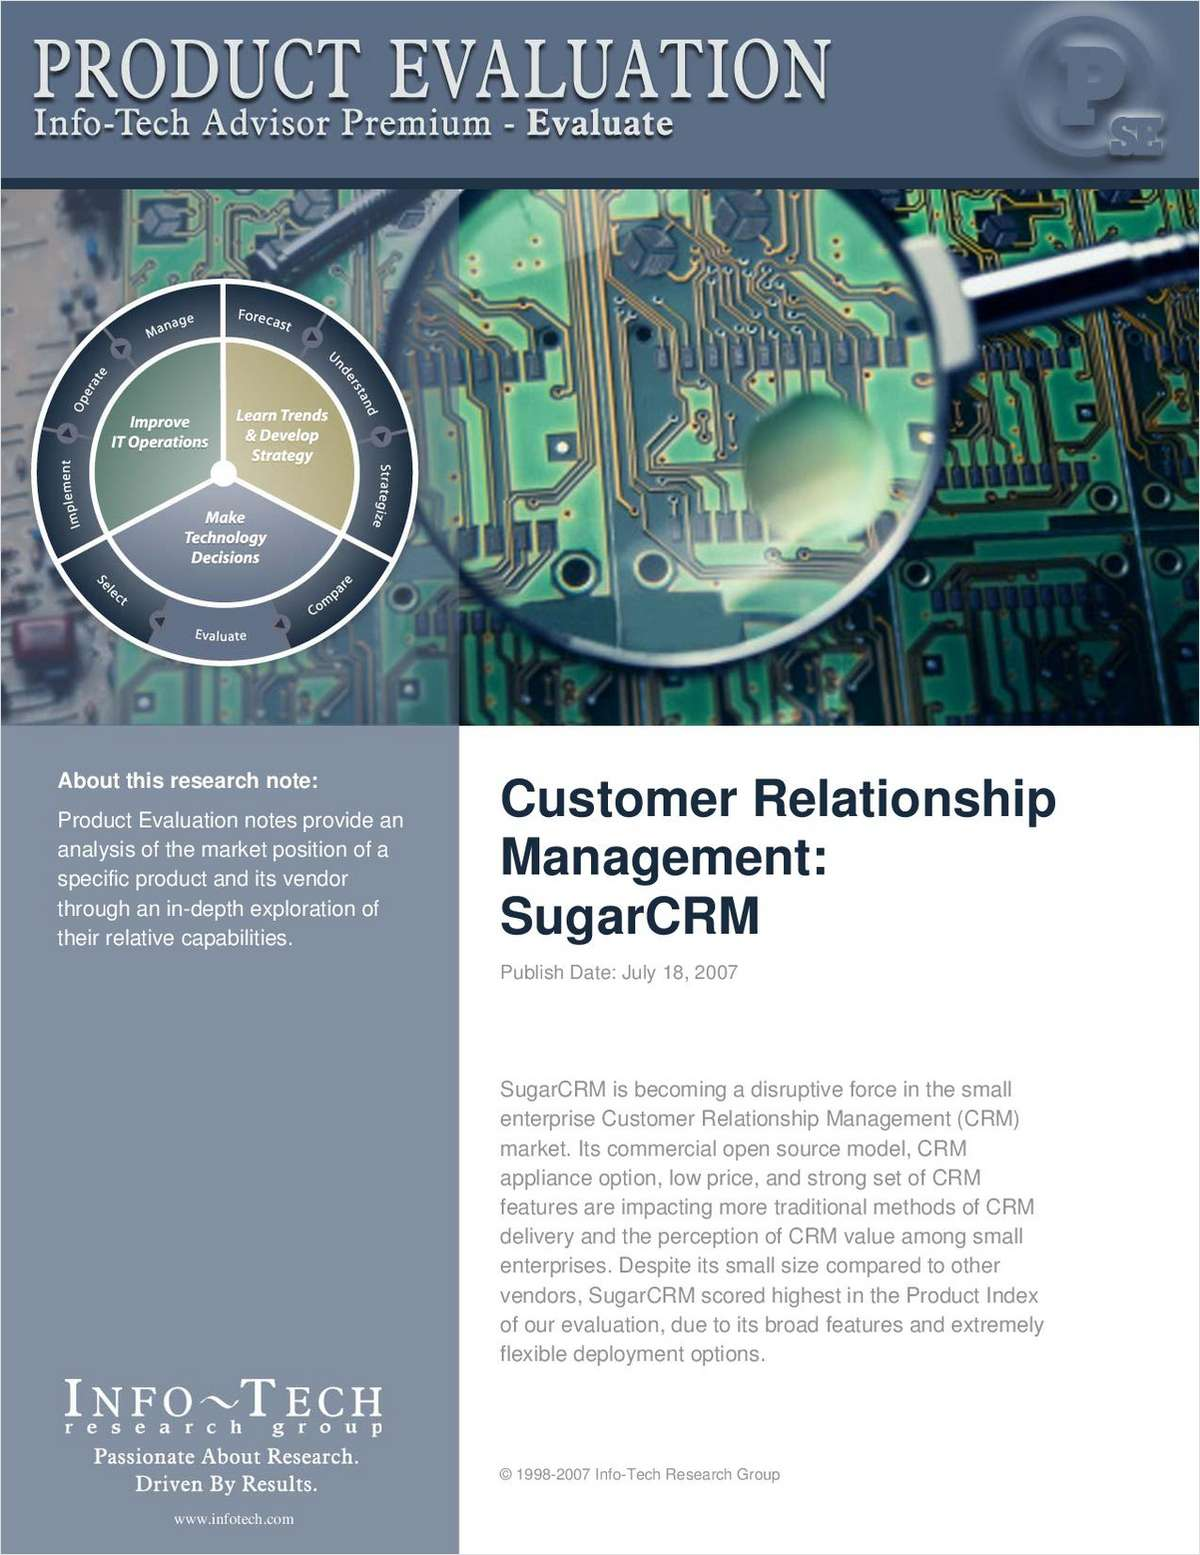 Product Evaluation CRM: SugarCRM by Independent Analyst Firm, Info-Tech Research